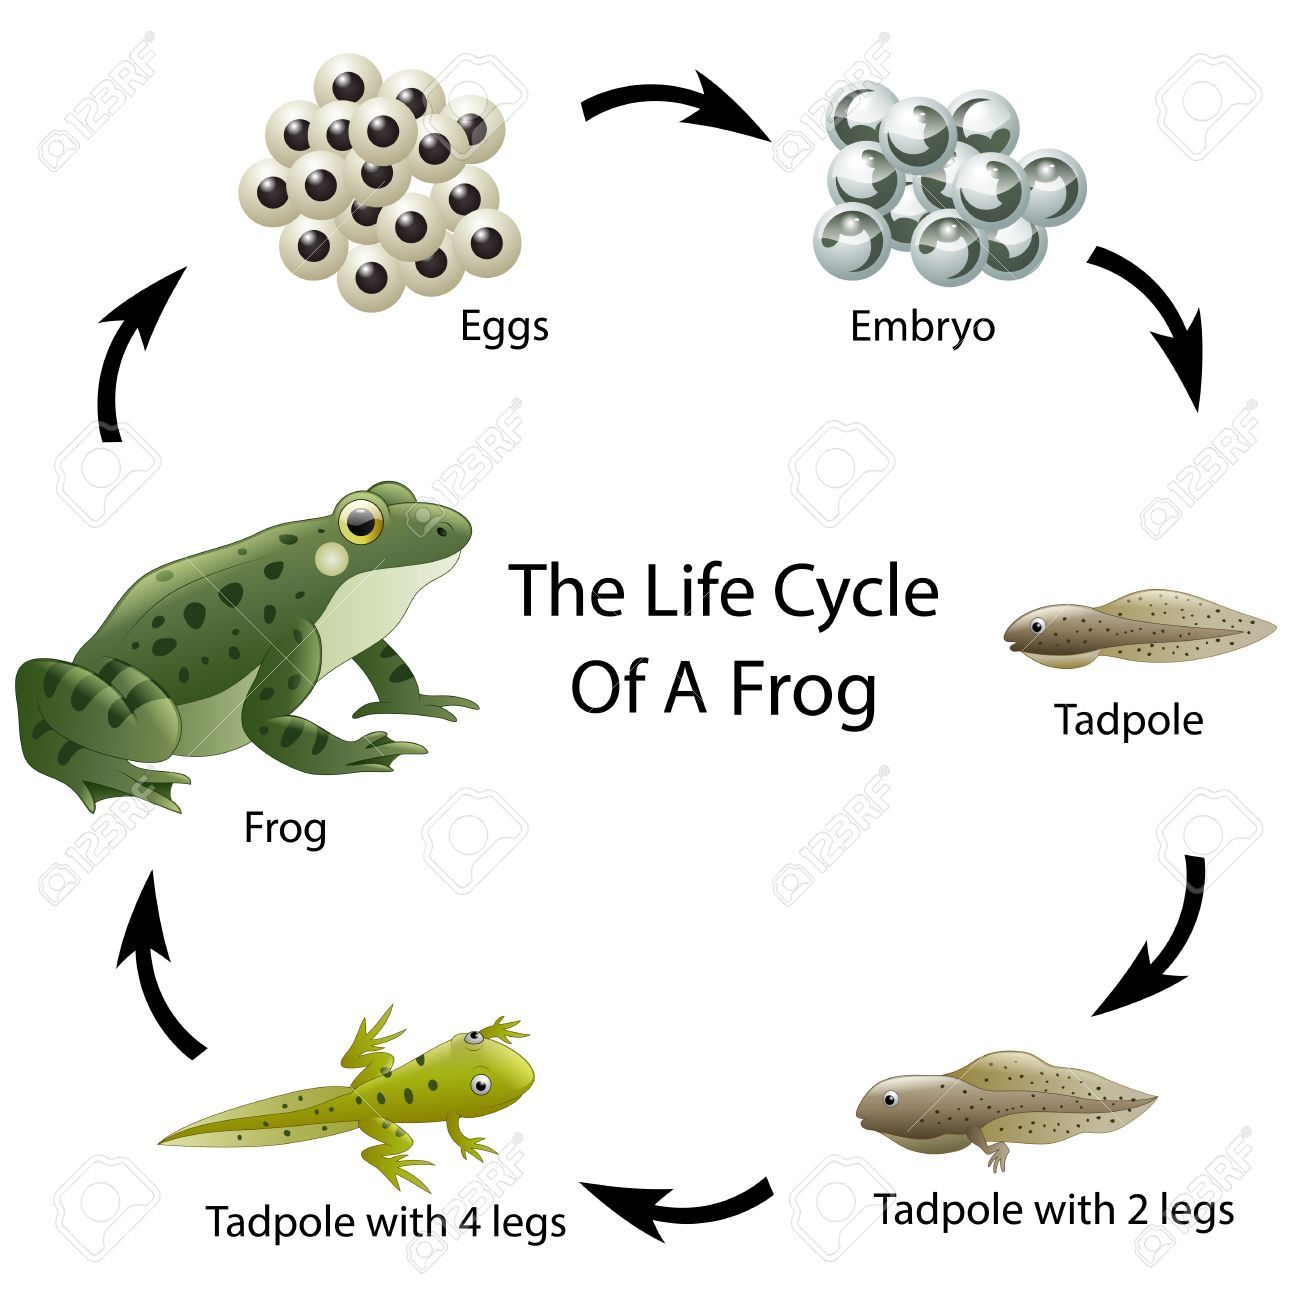 The Life Cycle Of A Frog Ad Life Cycle Frog